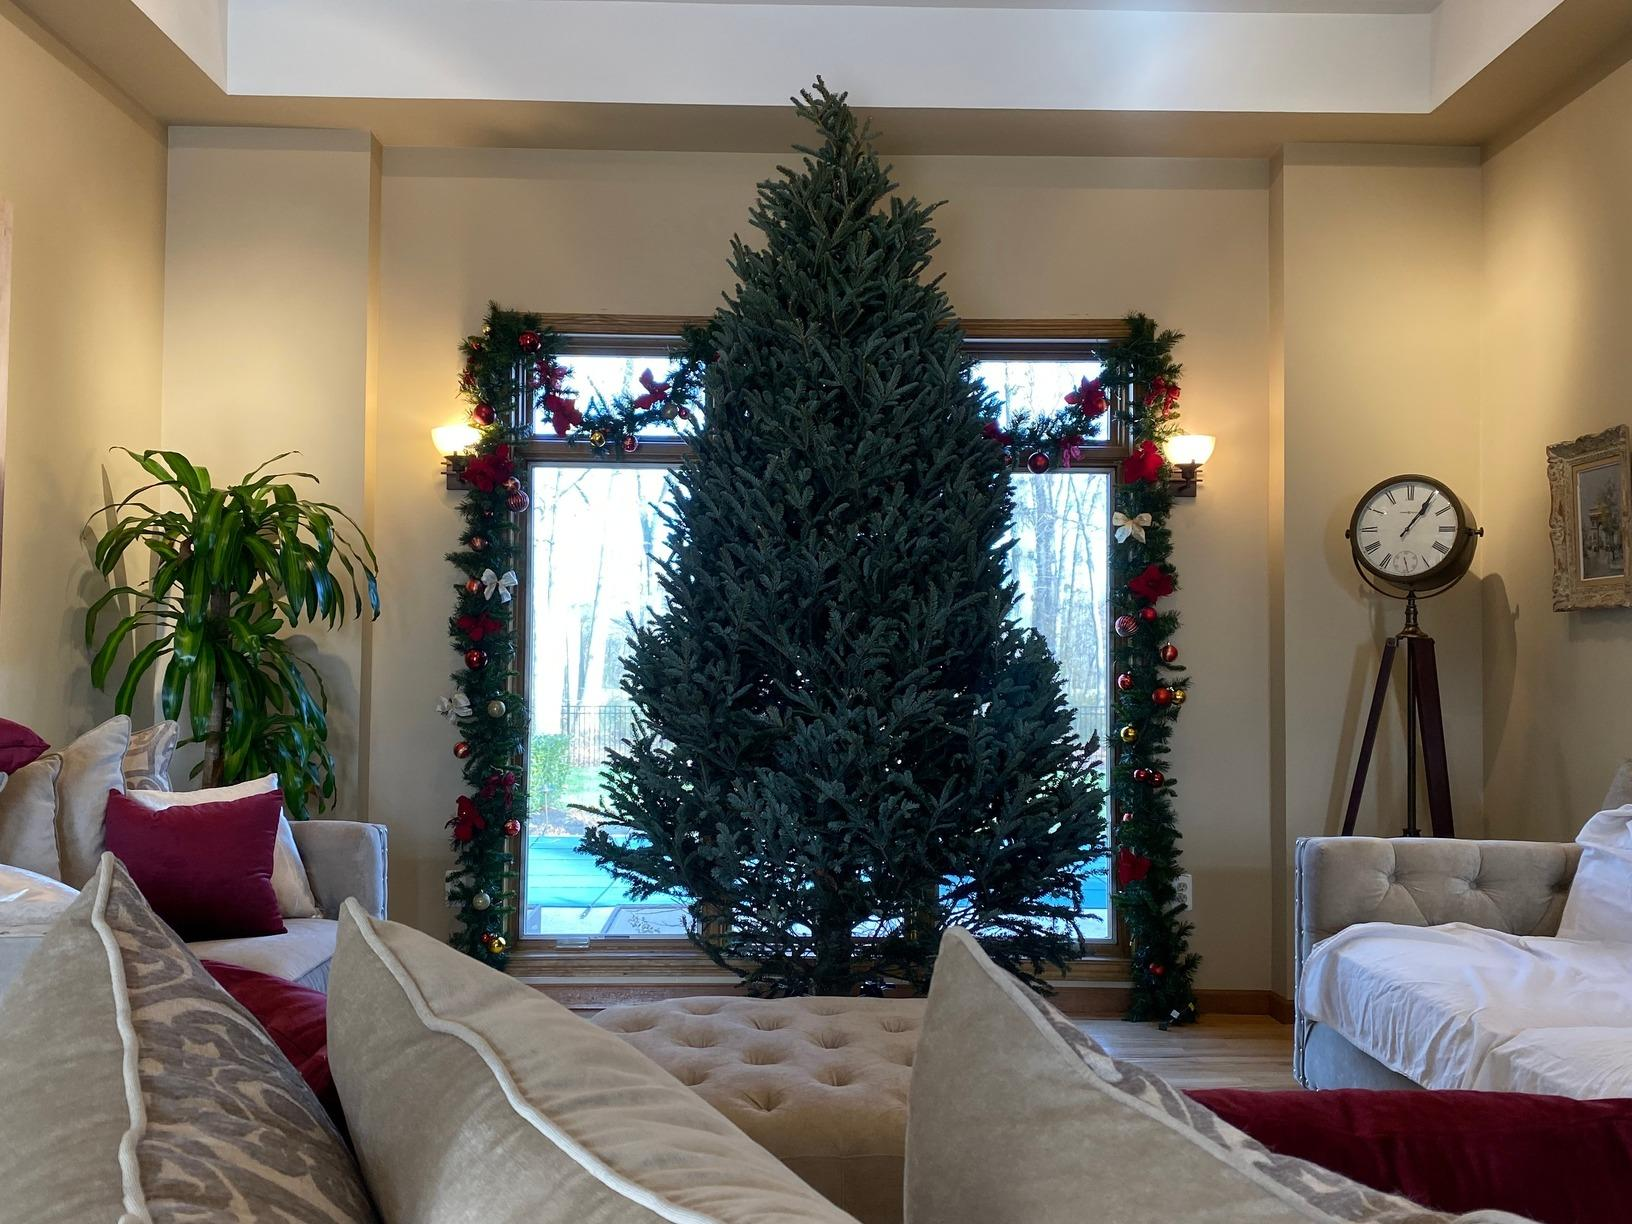 Professional Interior Christmas Decorating in Farmingdale, NJ - Before Photo